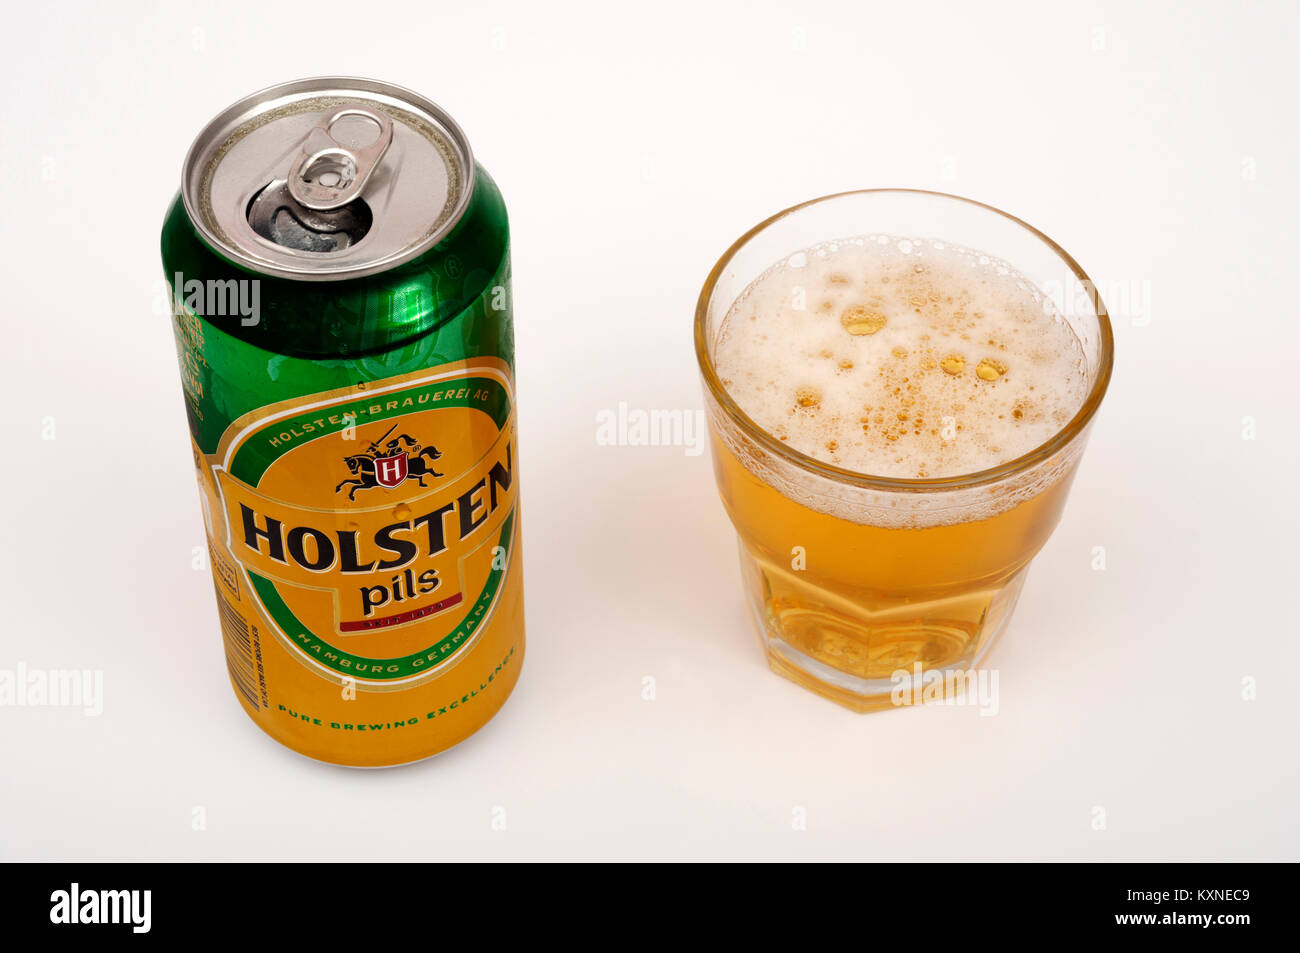 Holsten Pils beer - Stock Image